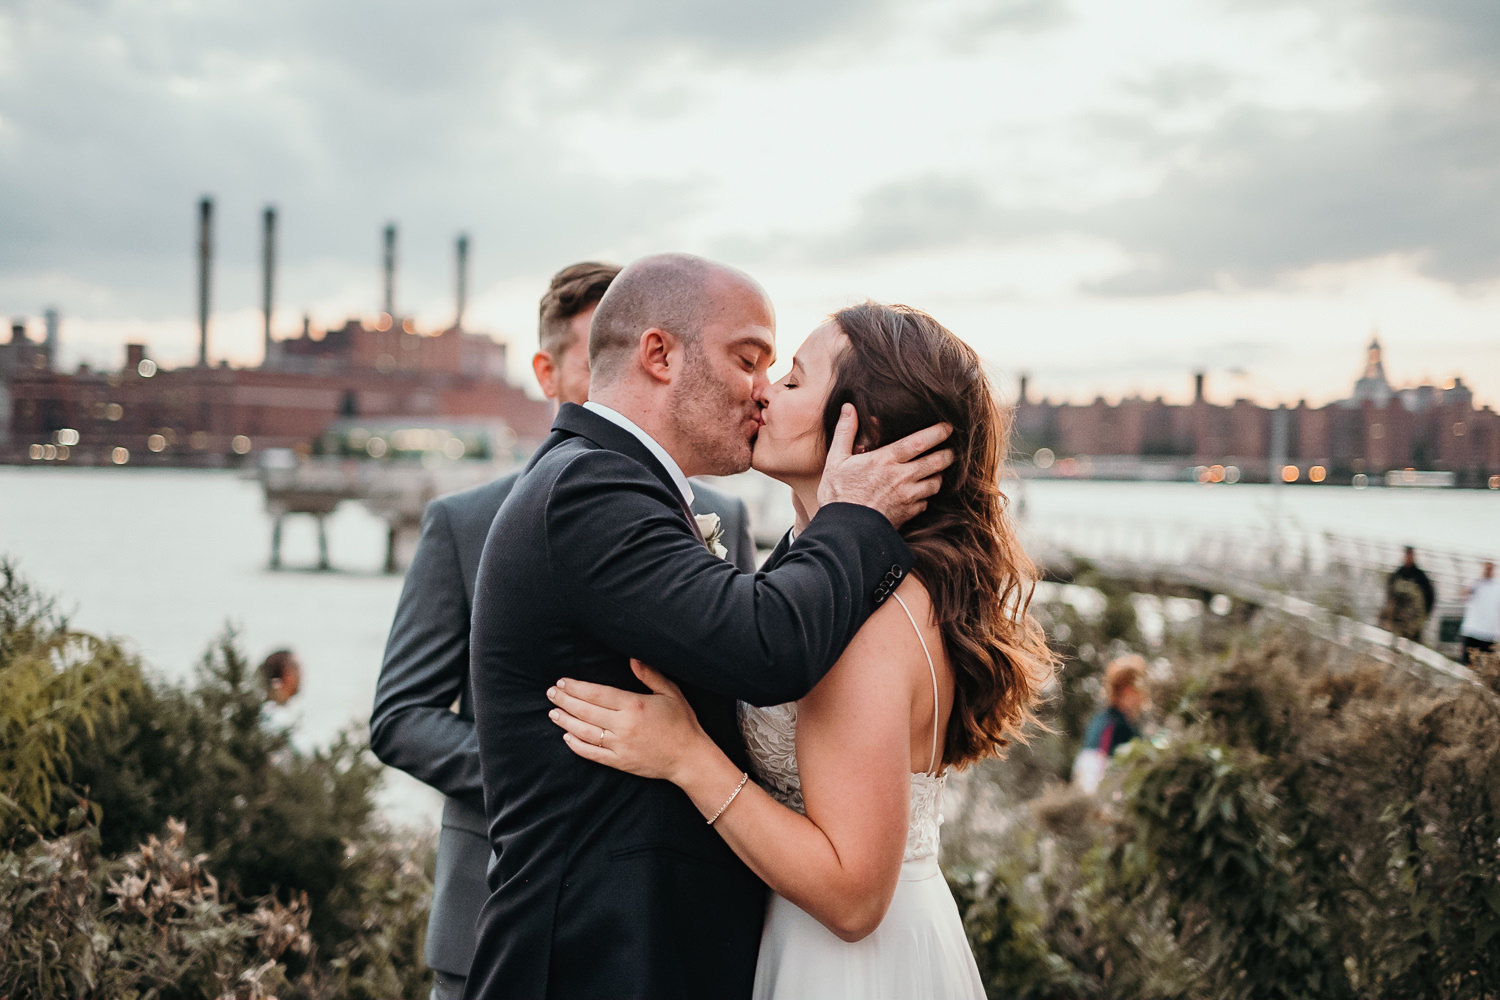 newlyweds first kiss New York city view in background